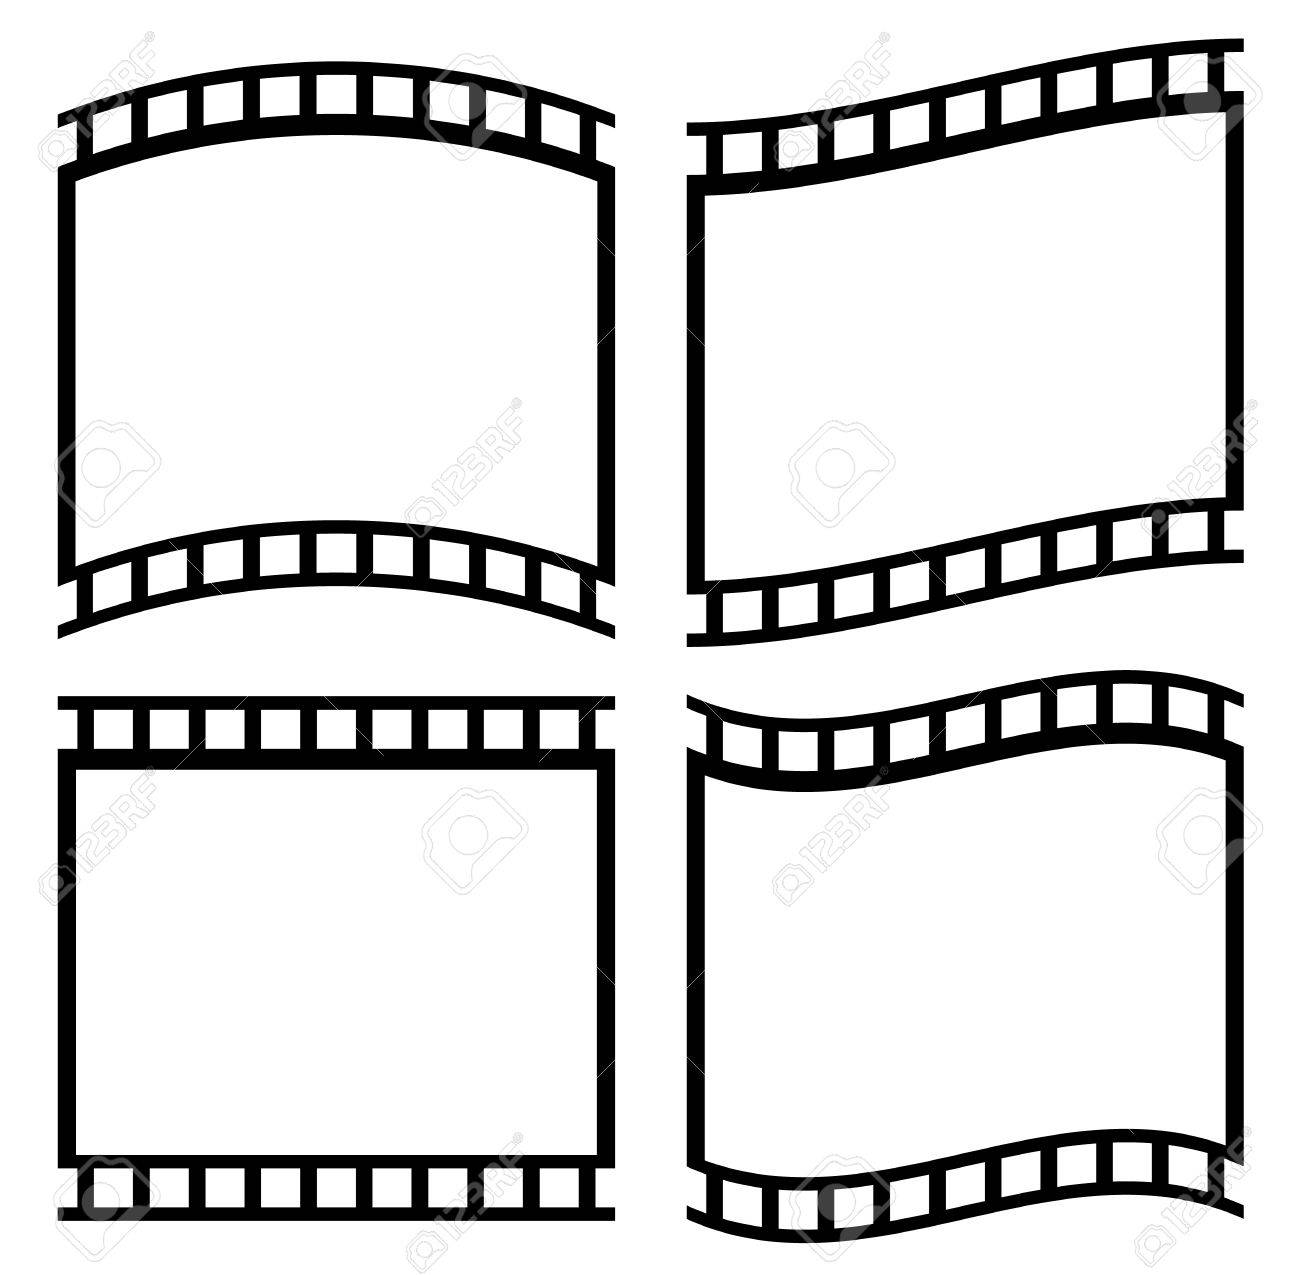 1300x1275 Black And White Film Strips, Film Tapes Royalty Free Cliparts